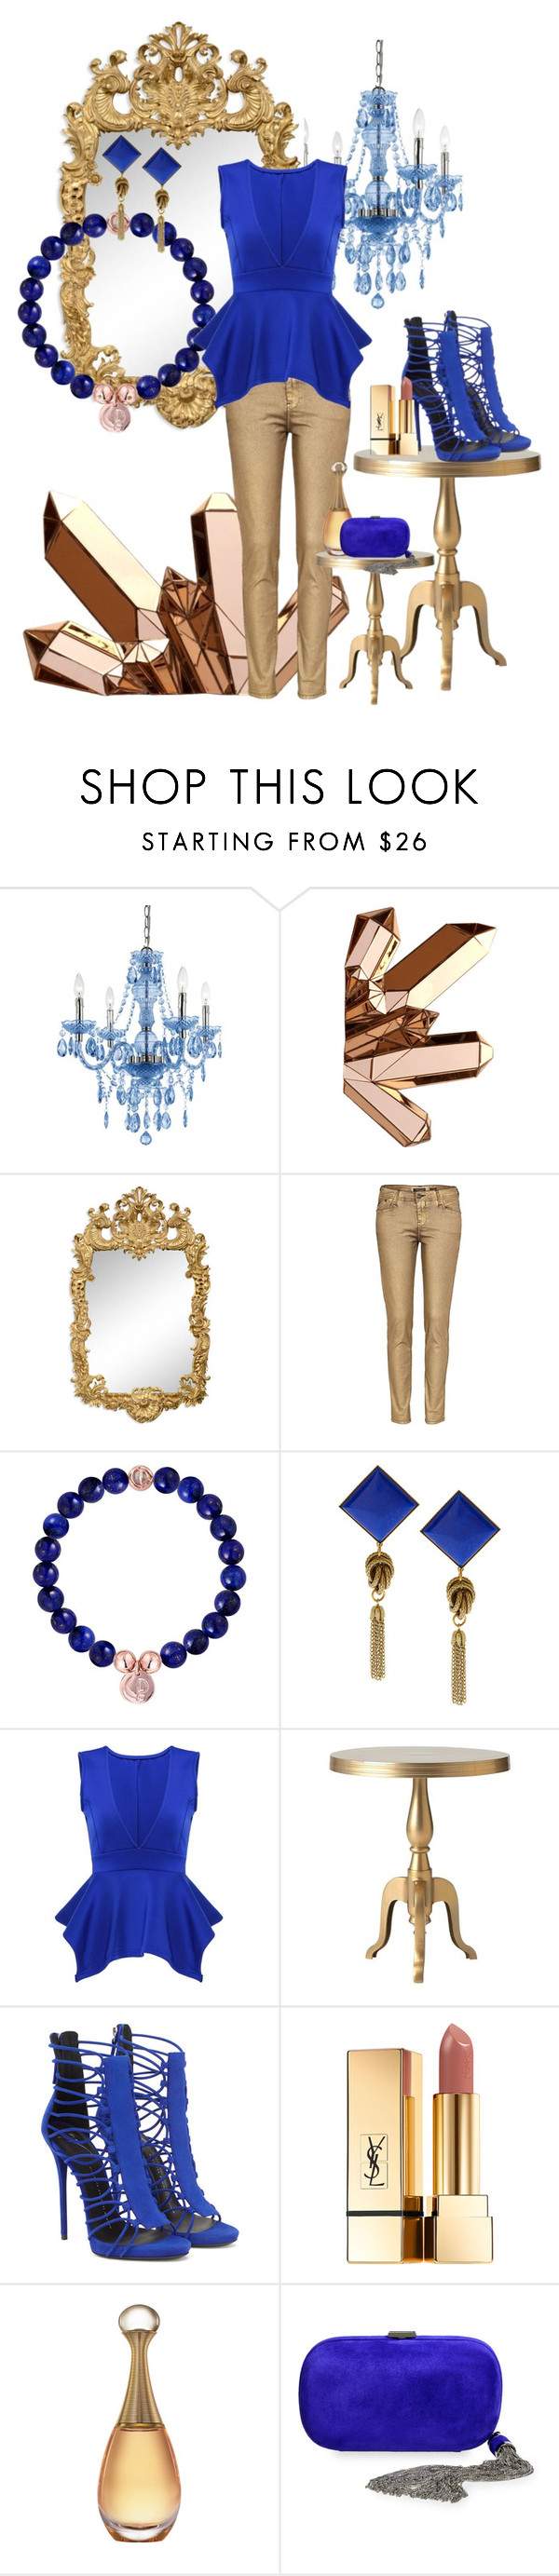 senza titolo 535 my polyvore finds